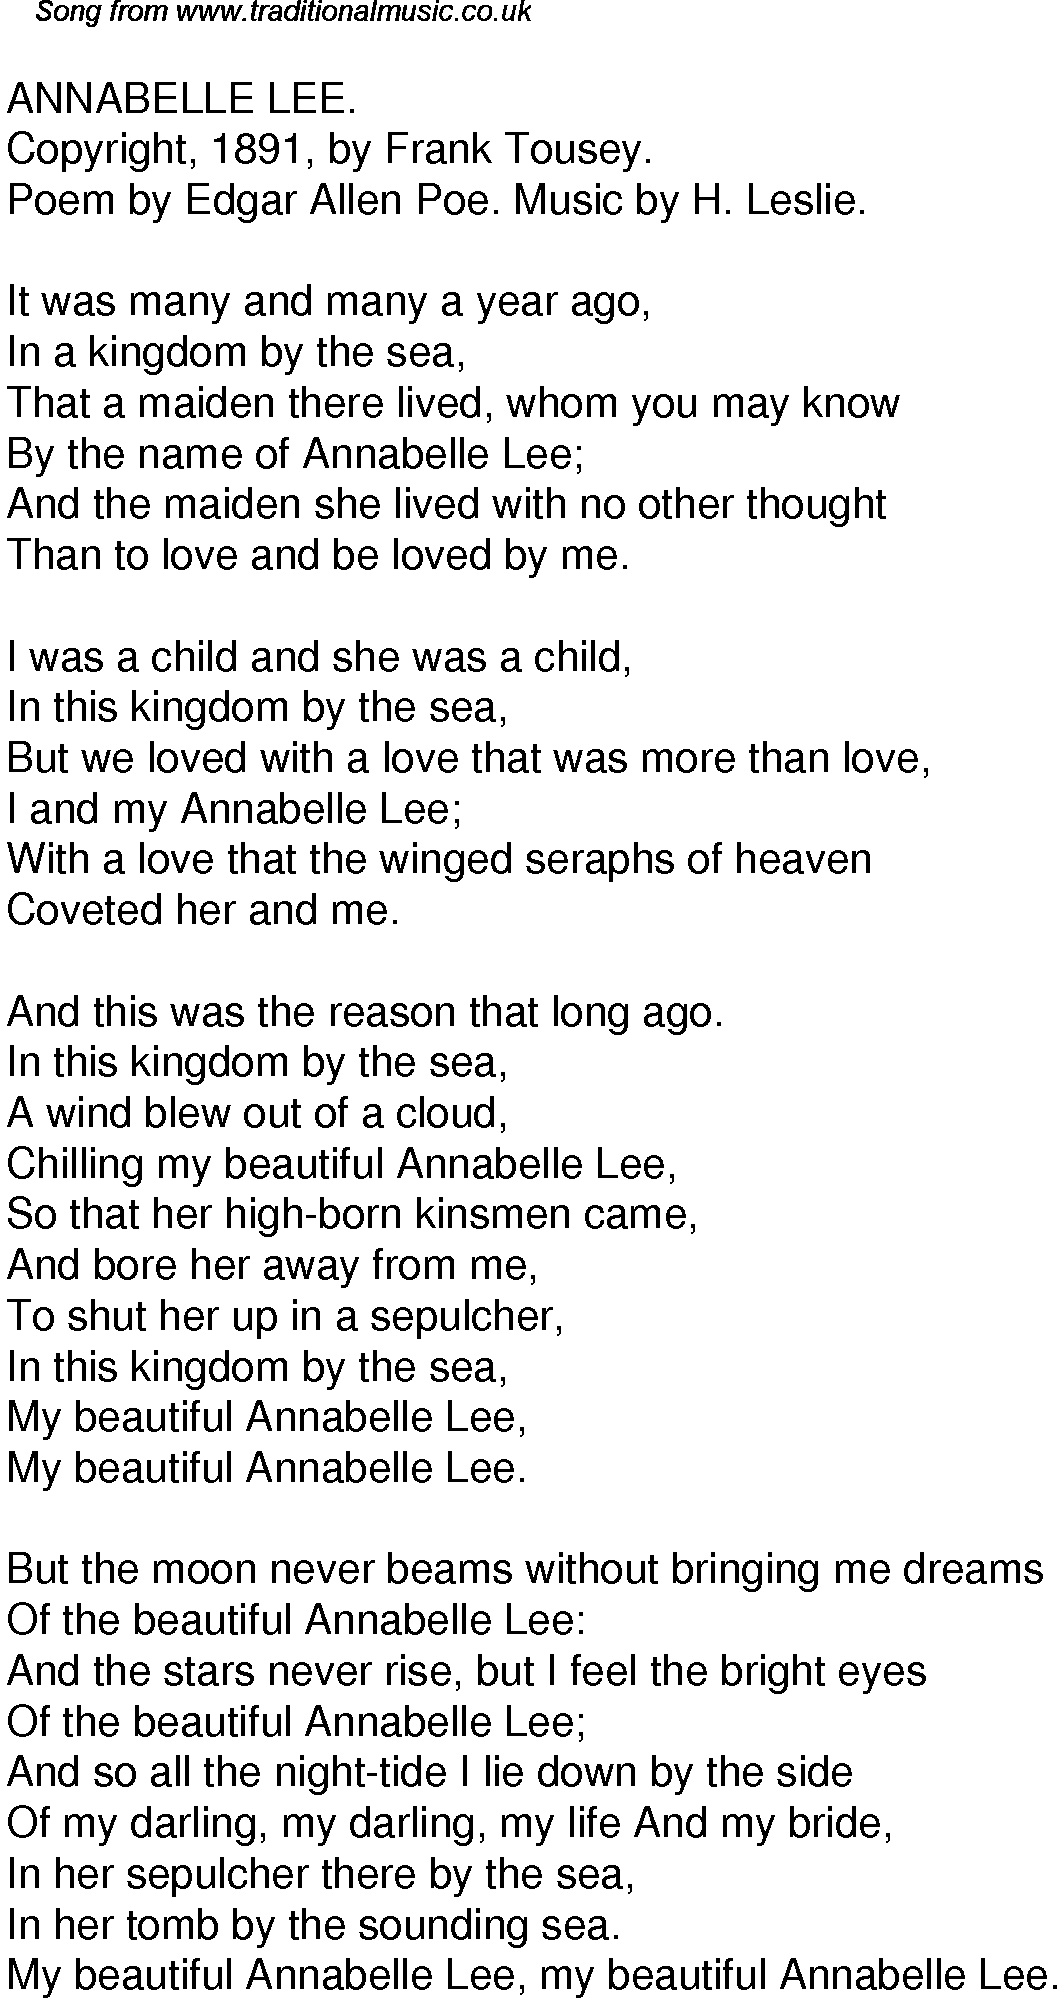 explication essay of annabel lee